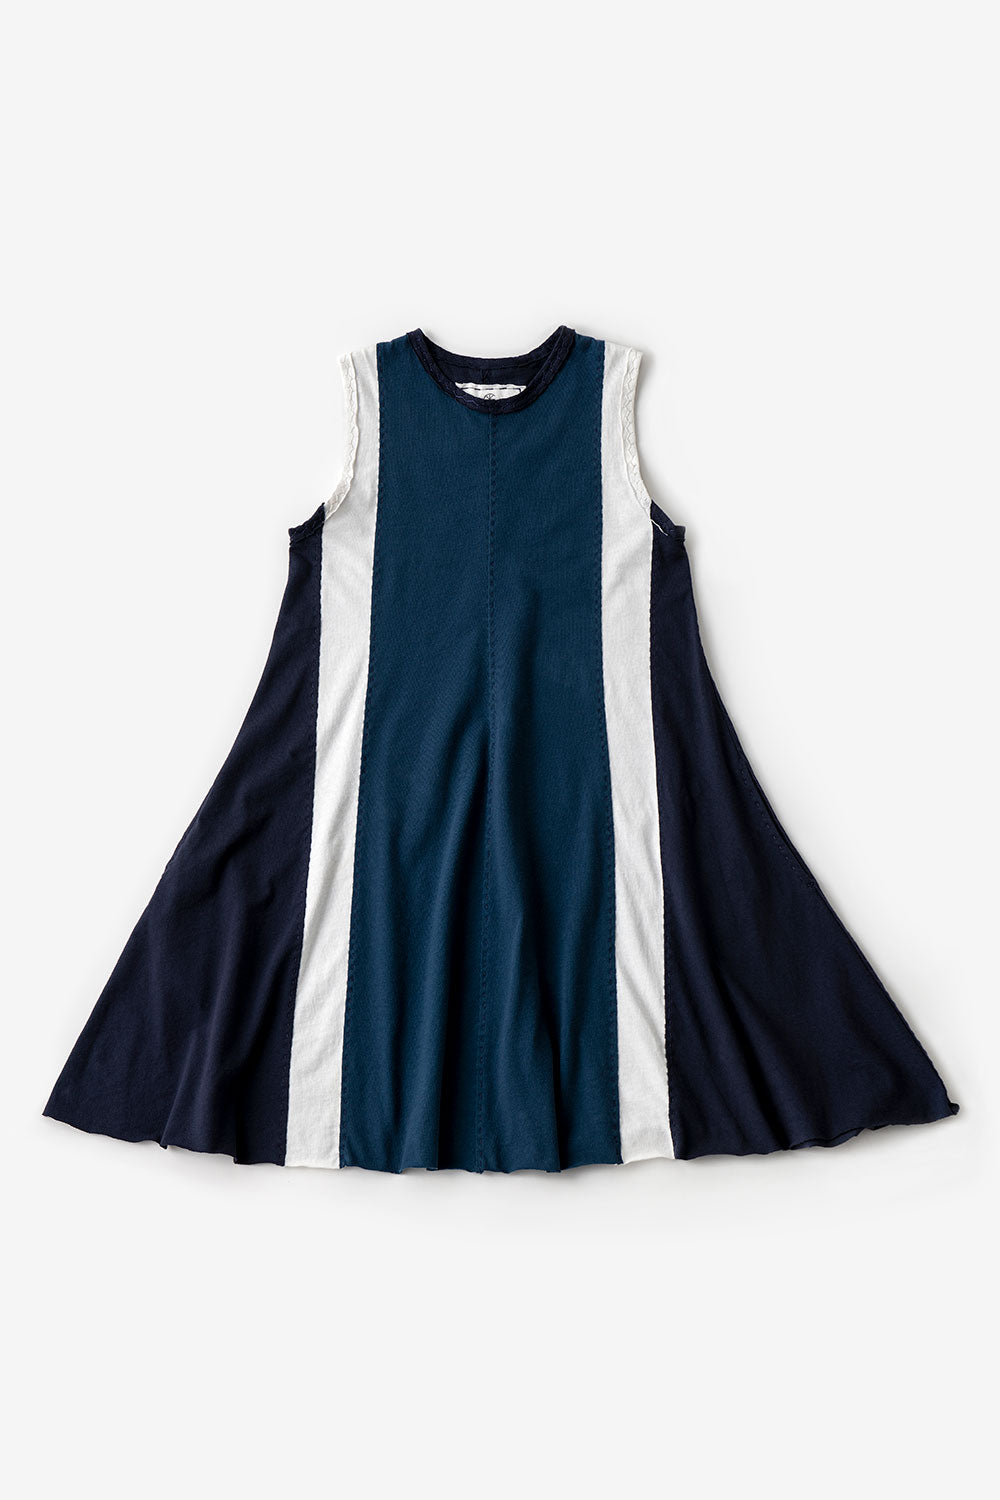 The School of Making The A-Line Dress Bundle 100% Organic Cotton Fabric and Women's A-Line Dress Hand Sewn DIY Clothing Project for Women